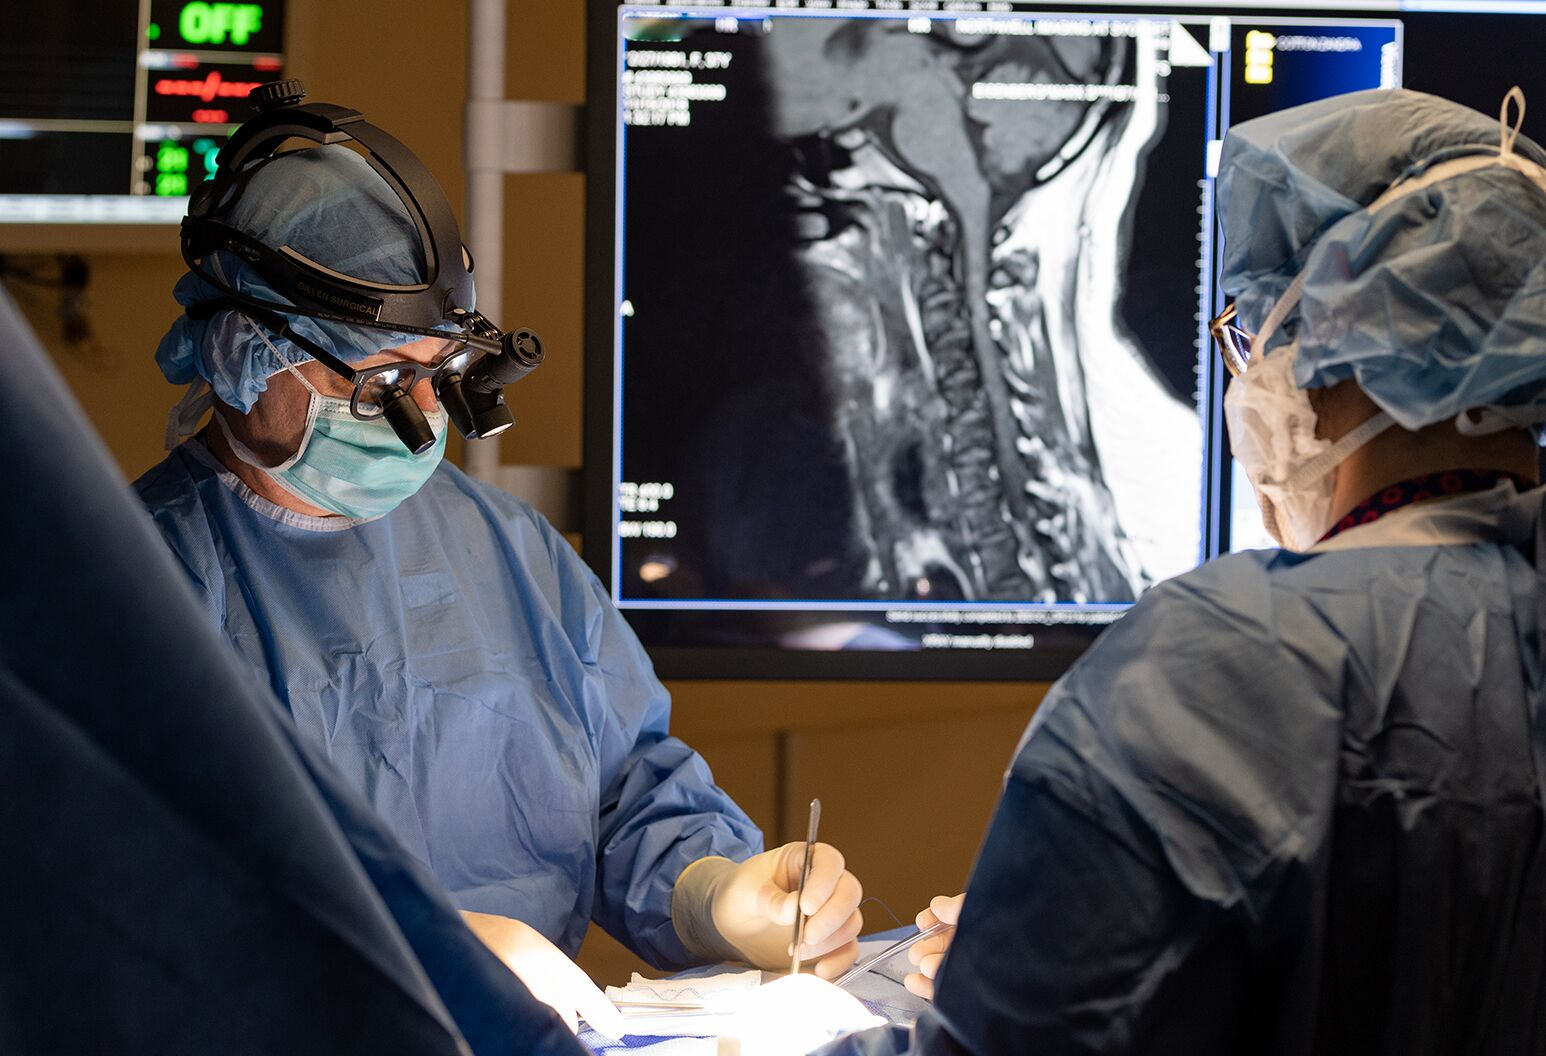 Two doctors performing spine surgery on a patient.